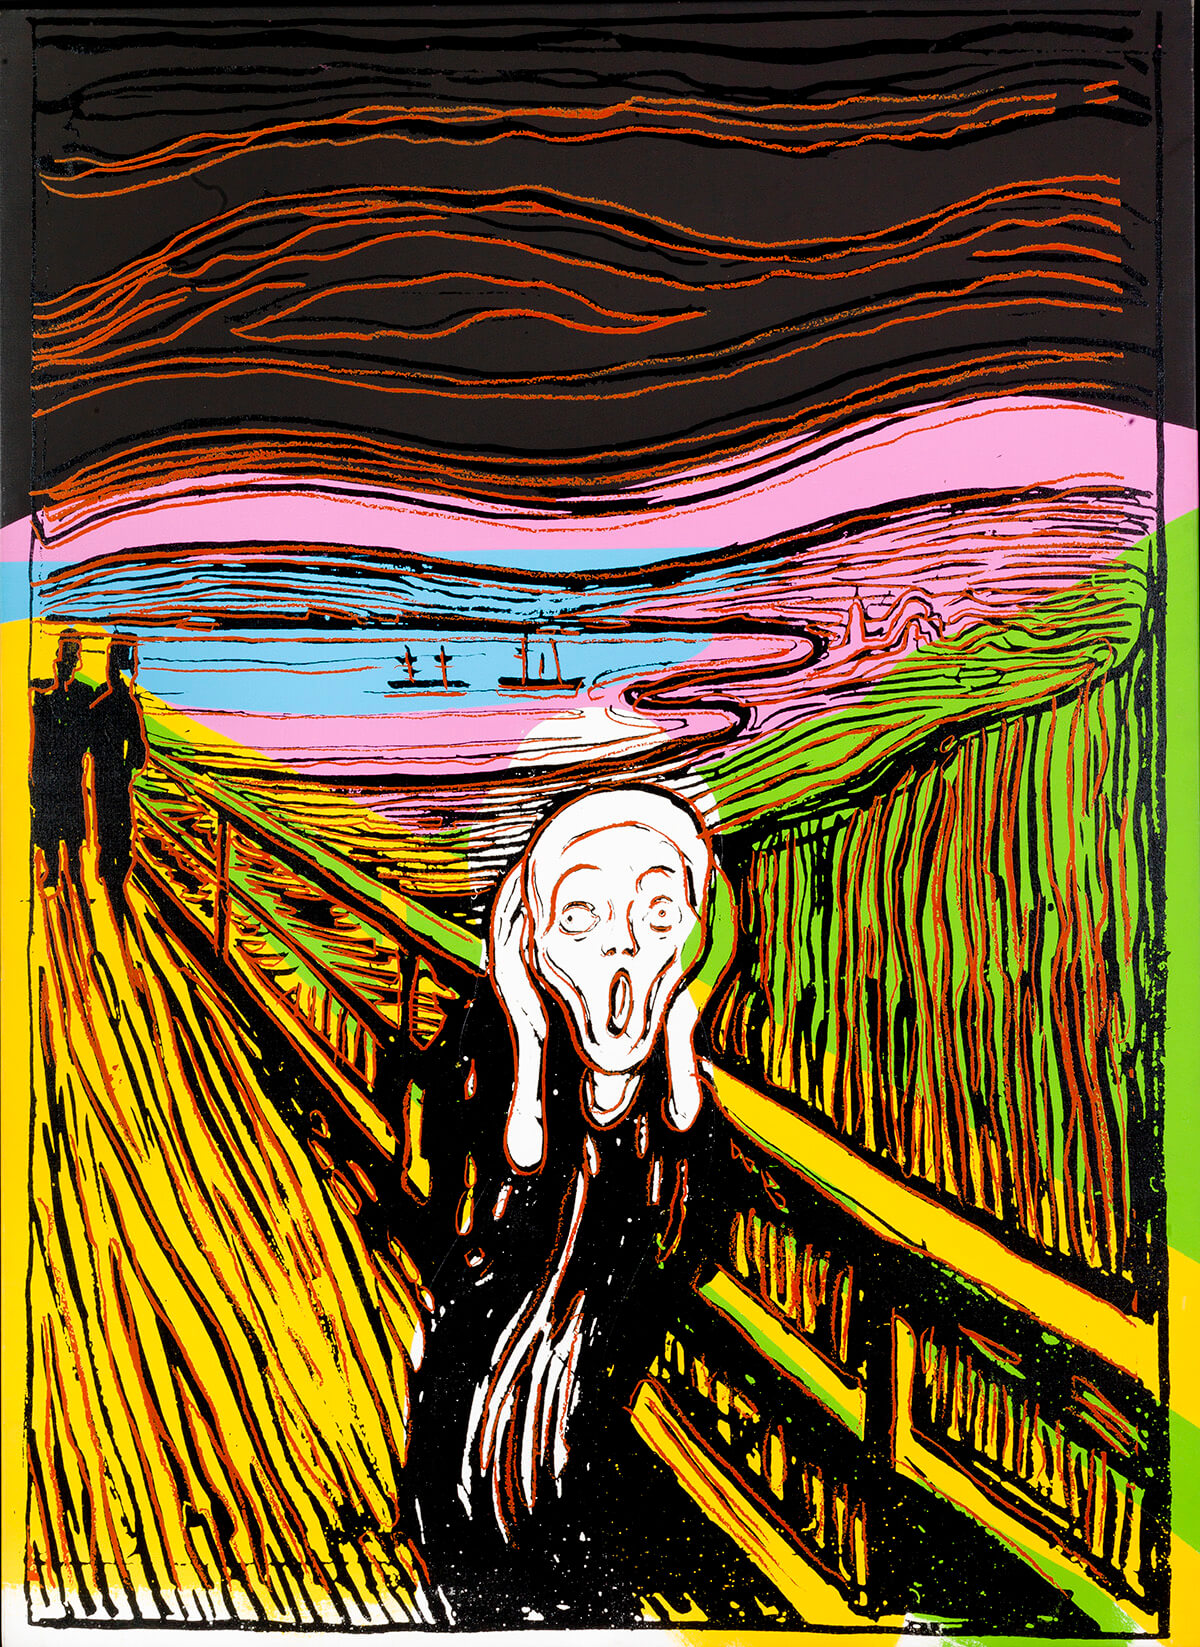 Andy Warhol: The Scream (After Munch), 1984. © The Andy Warhol Foundation for the Visual Arts